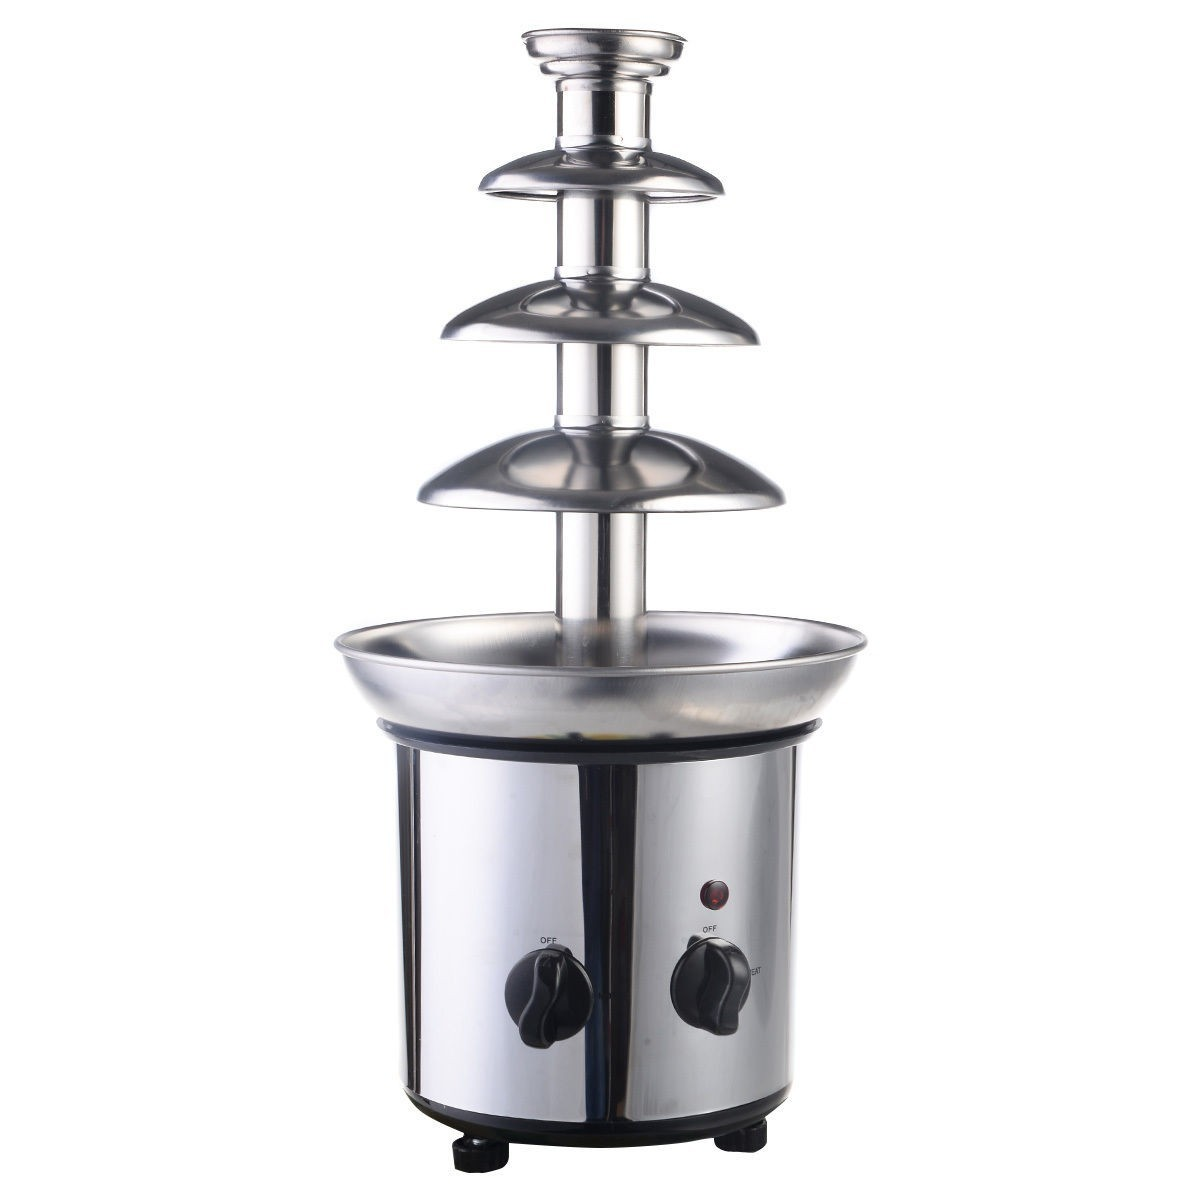 4 Tiers Commercial Stainless Steel Hot New Luxury Chocolate Fondue Fountain by Apontus